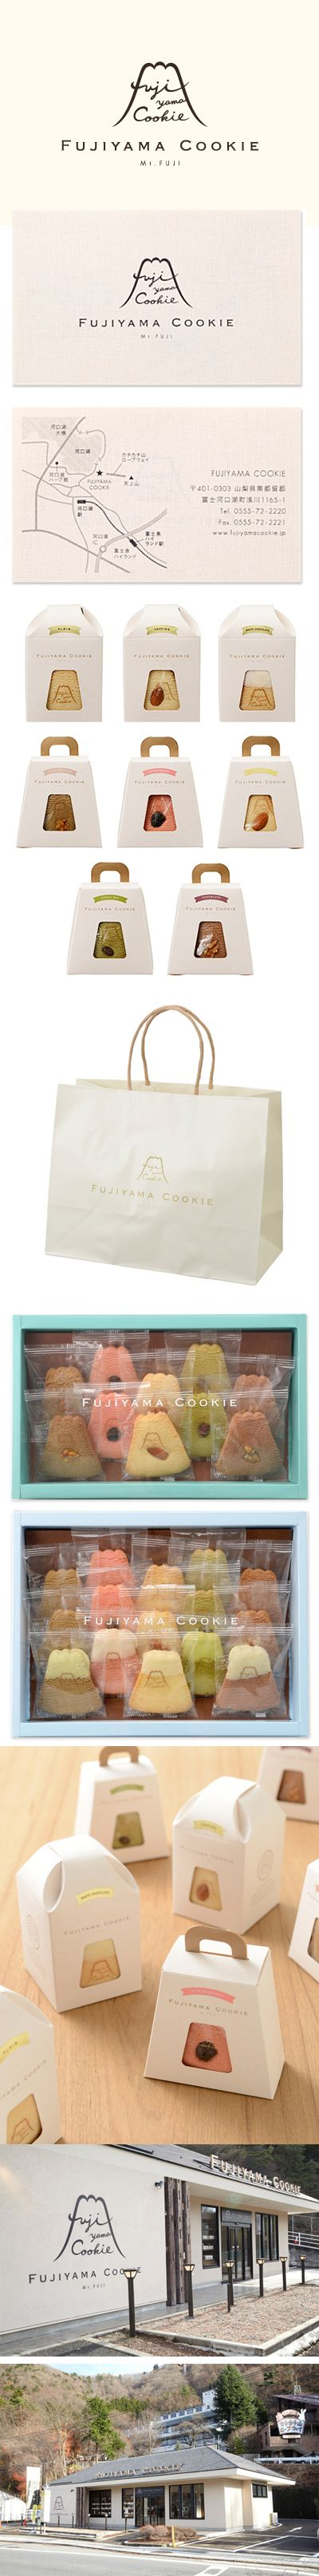 Woo Hoo here's the whole Fujiyama cookie #identity #packaging